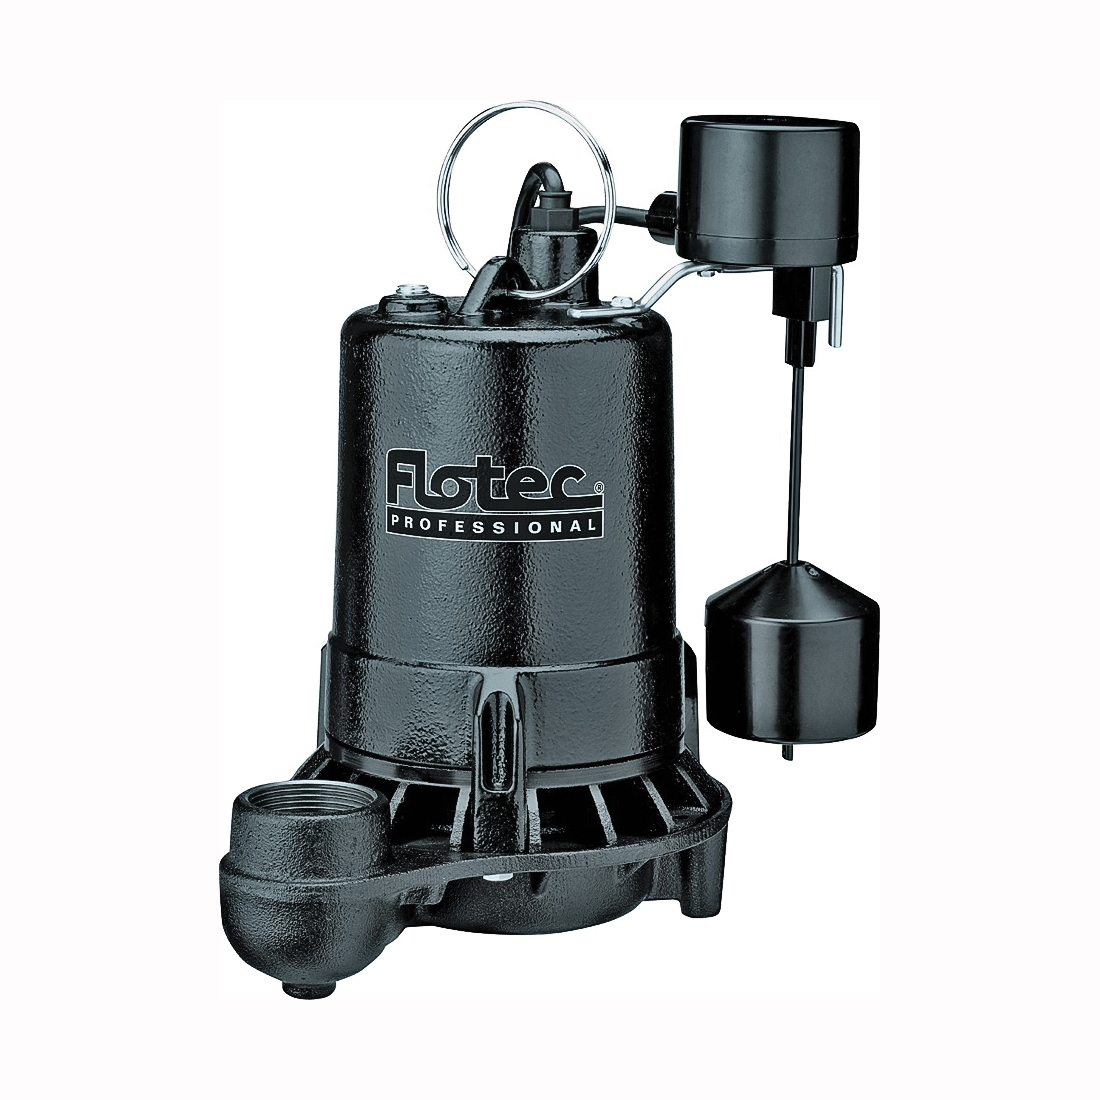 Picture of Flotec Professional E75VLT Sump Pump, 1-Phase, 7 A, 115 V, 0.75 hp, 1-1/2 in Outlet, 25 ft Max Head, 1800 gph